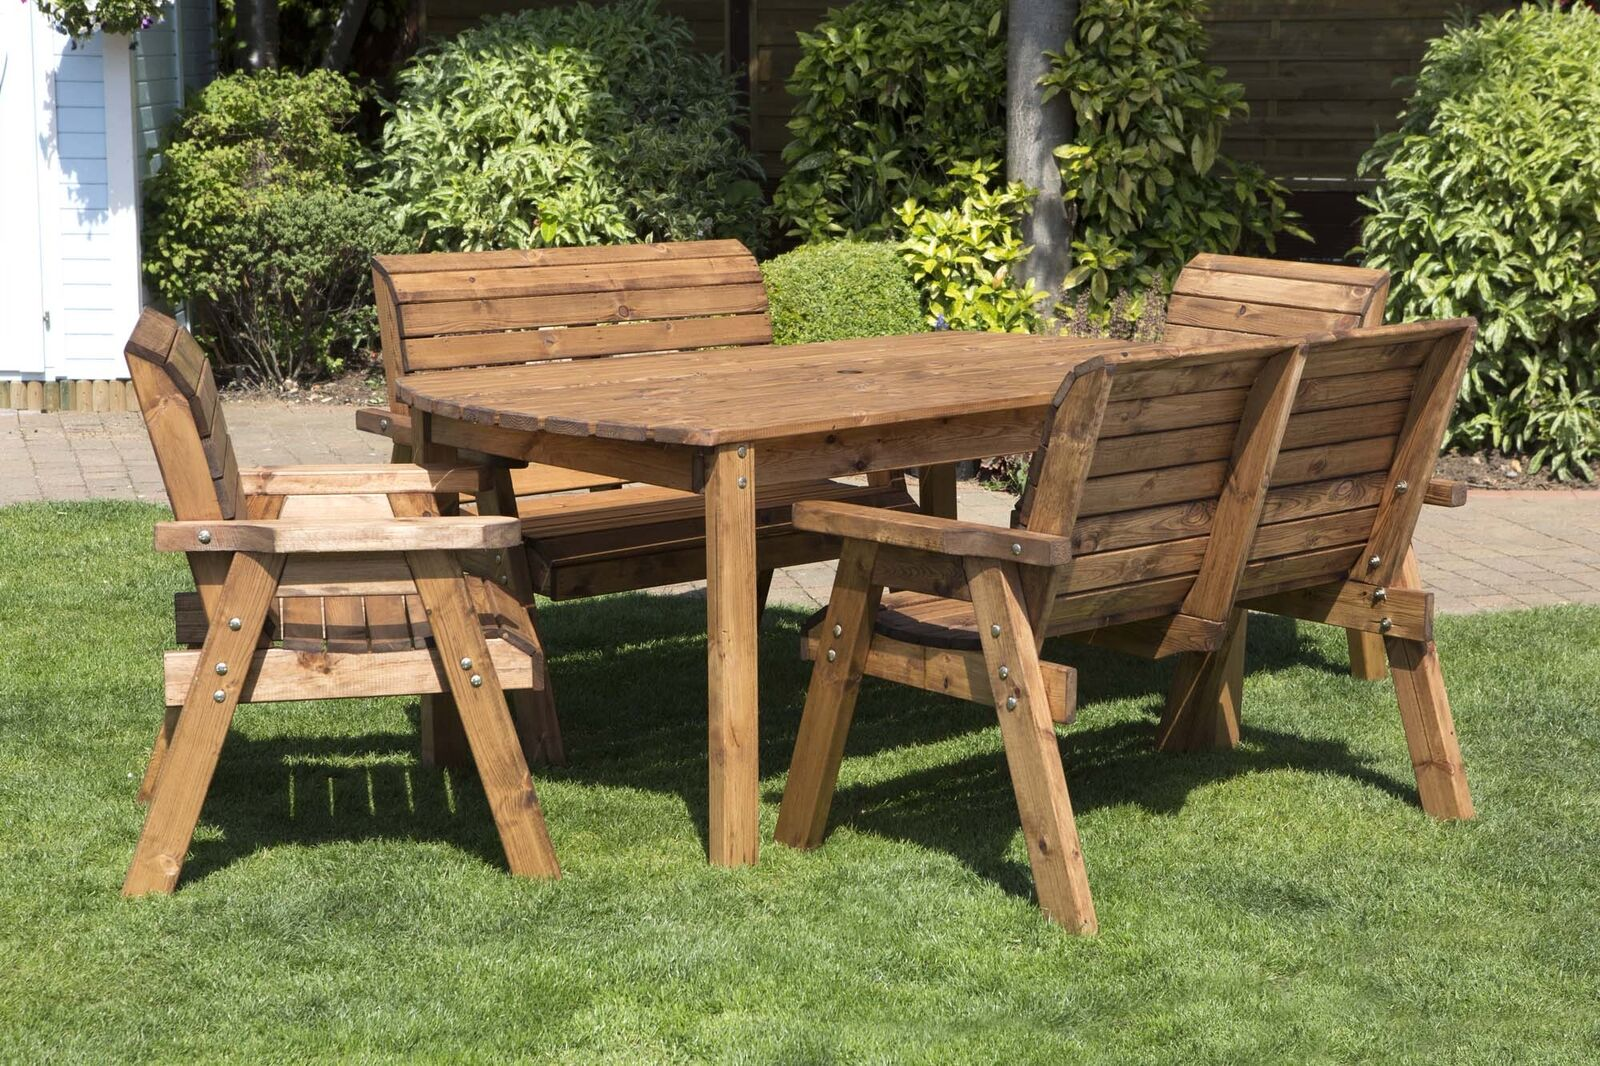 Hand Made 20 Seater Chunky Rustic Wooden Garden Furniture Table and ...